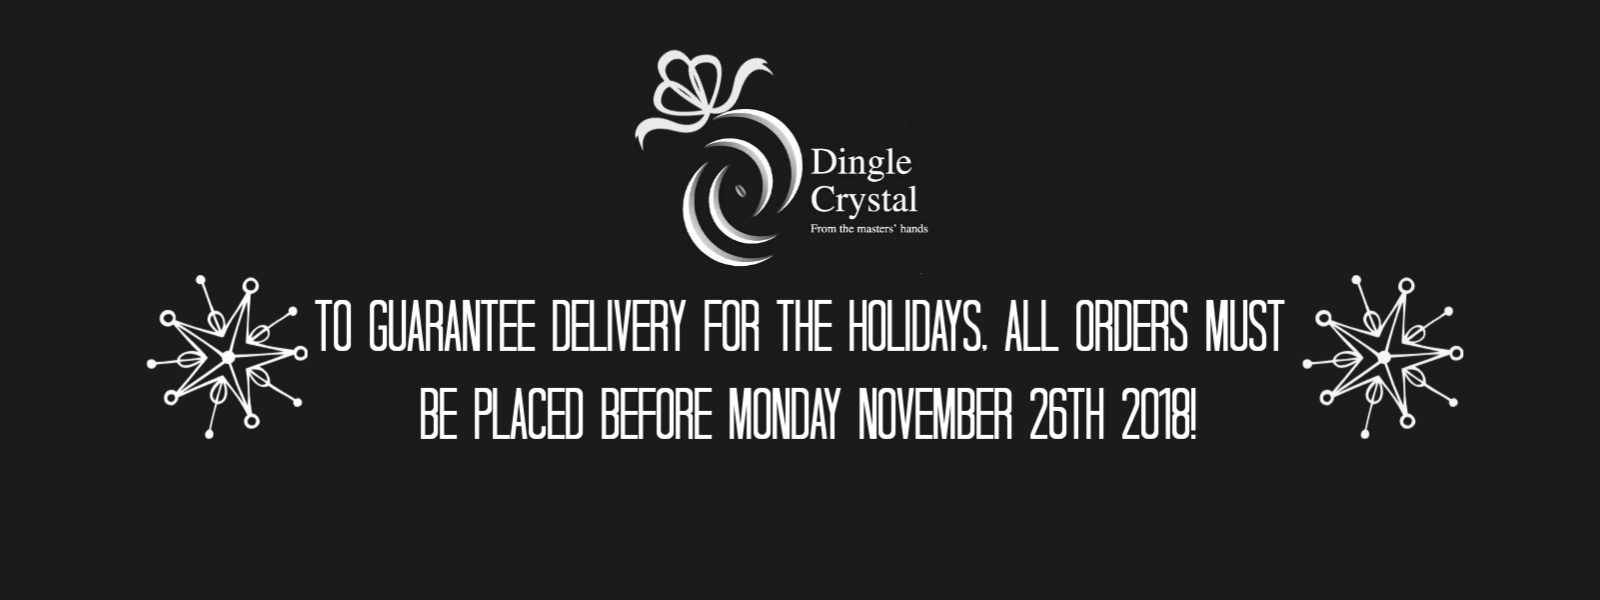 Holiday Orders 2018